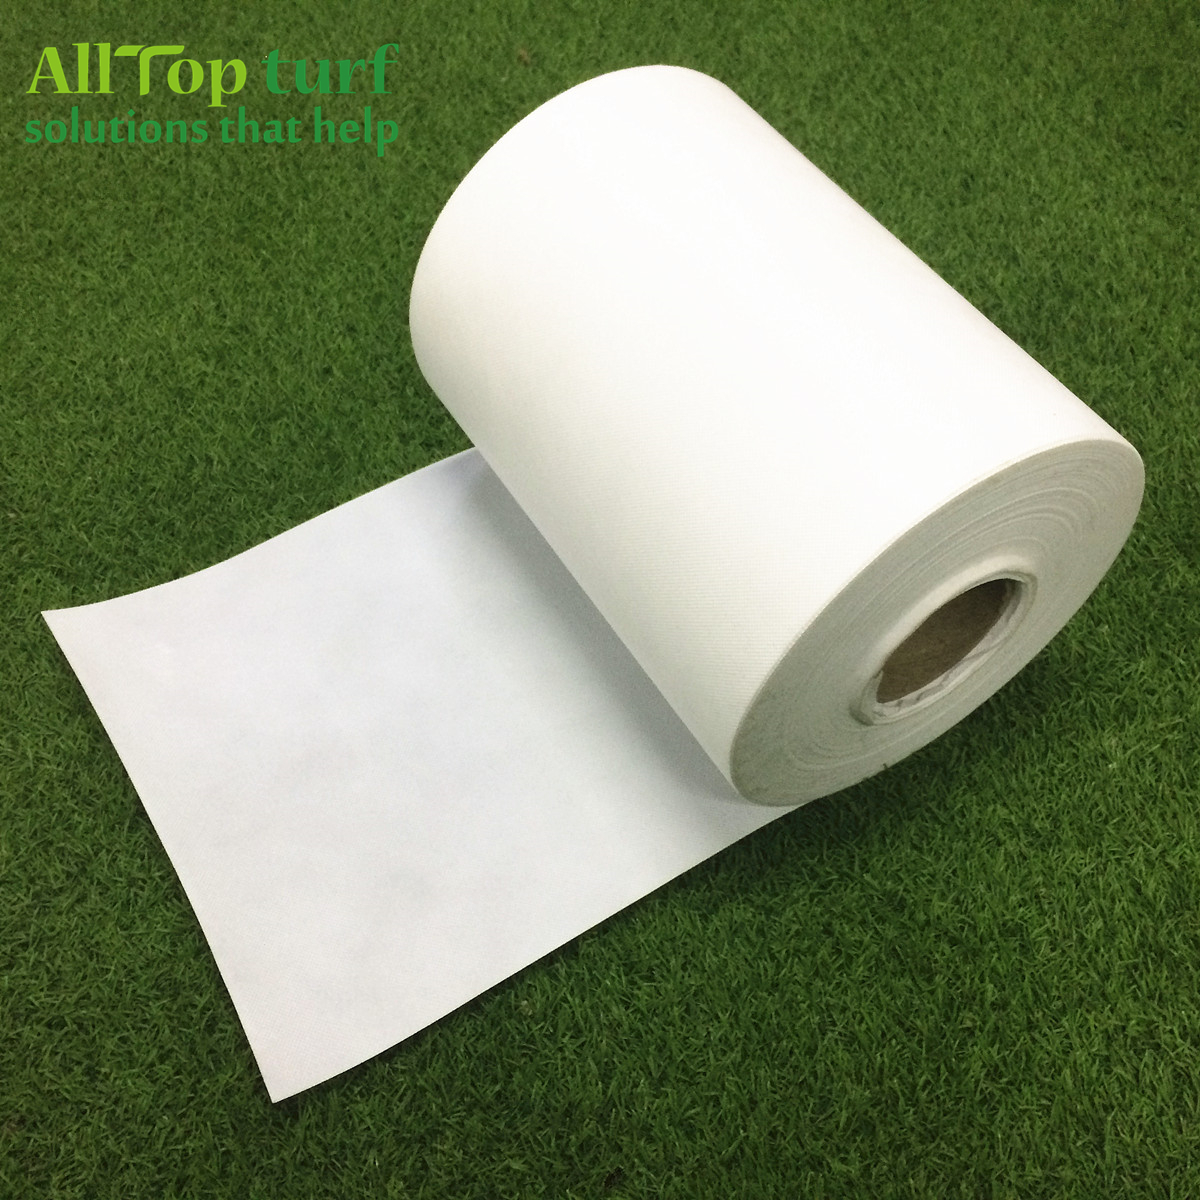 "AllTop Turf 12"" Wide 325' Long Commercial Grade Heavy Duty Premium Seam Tape for Sports and Landscap"